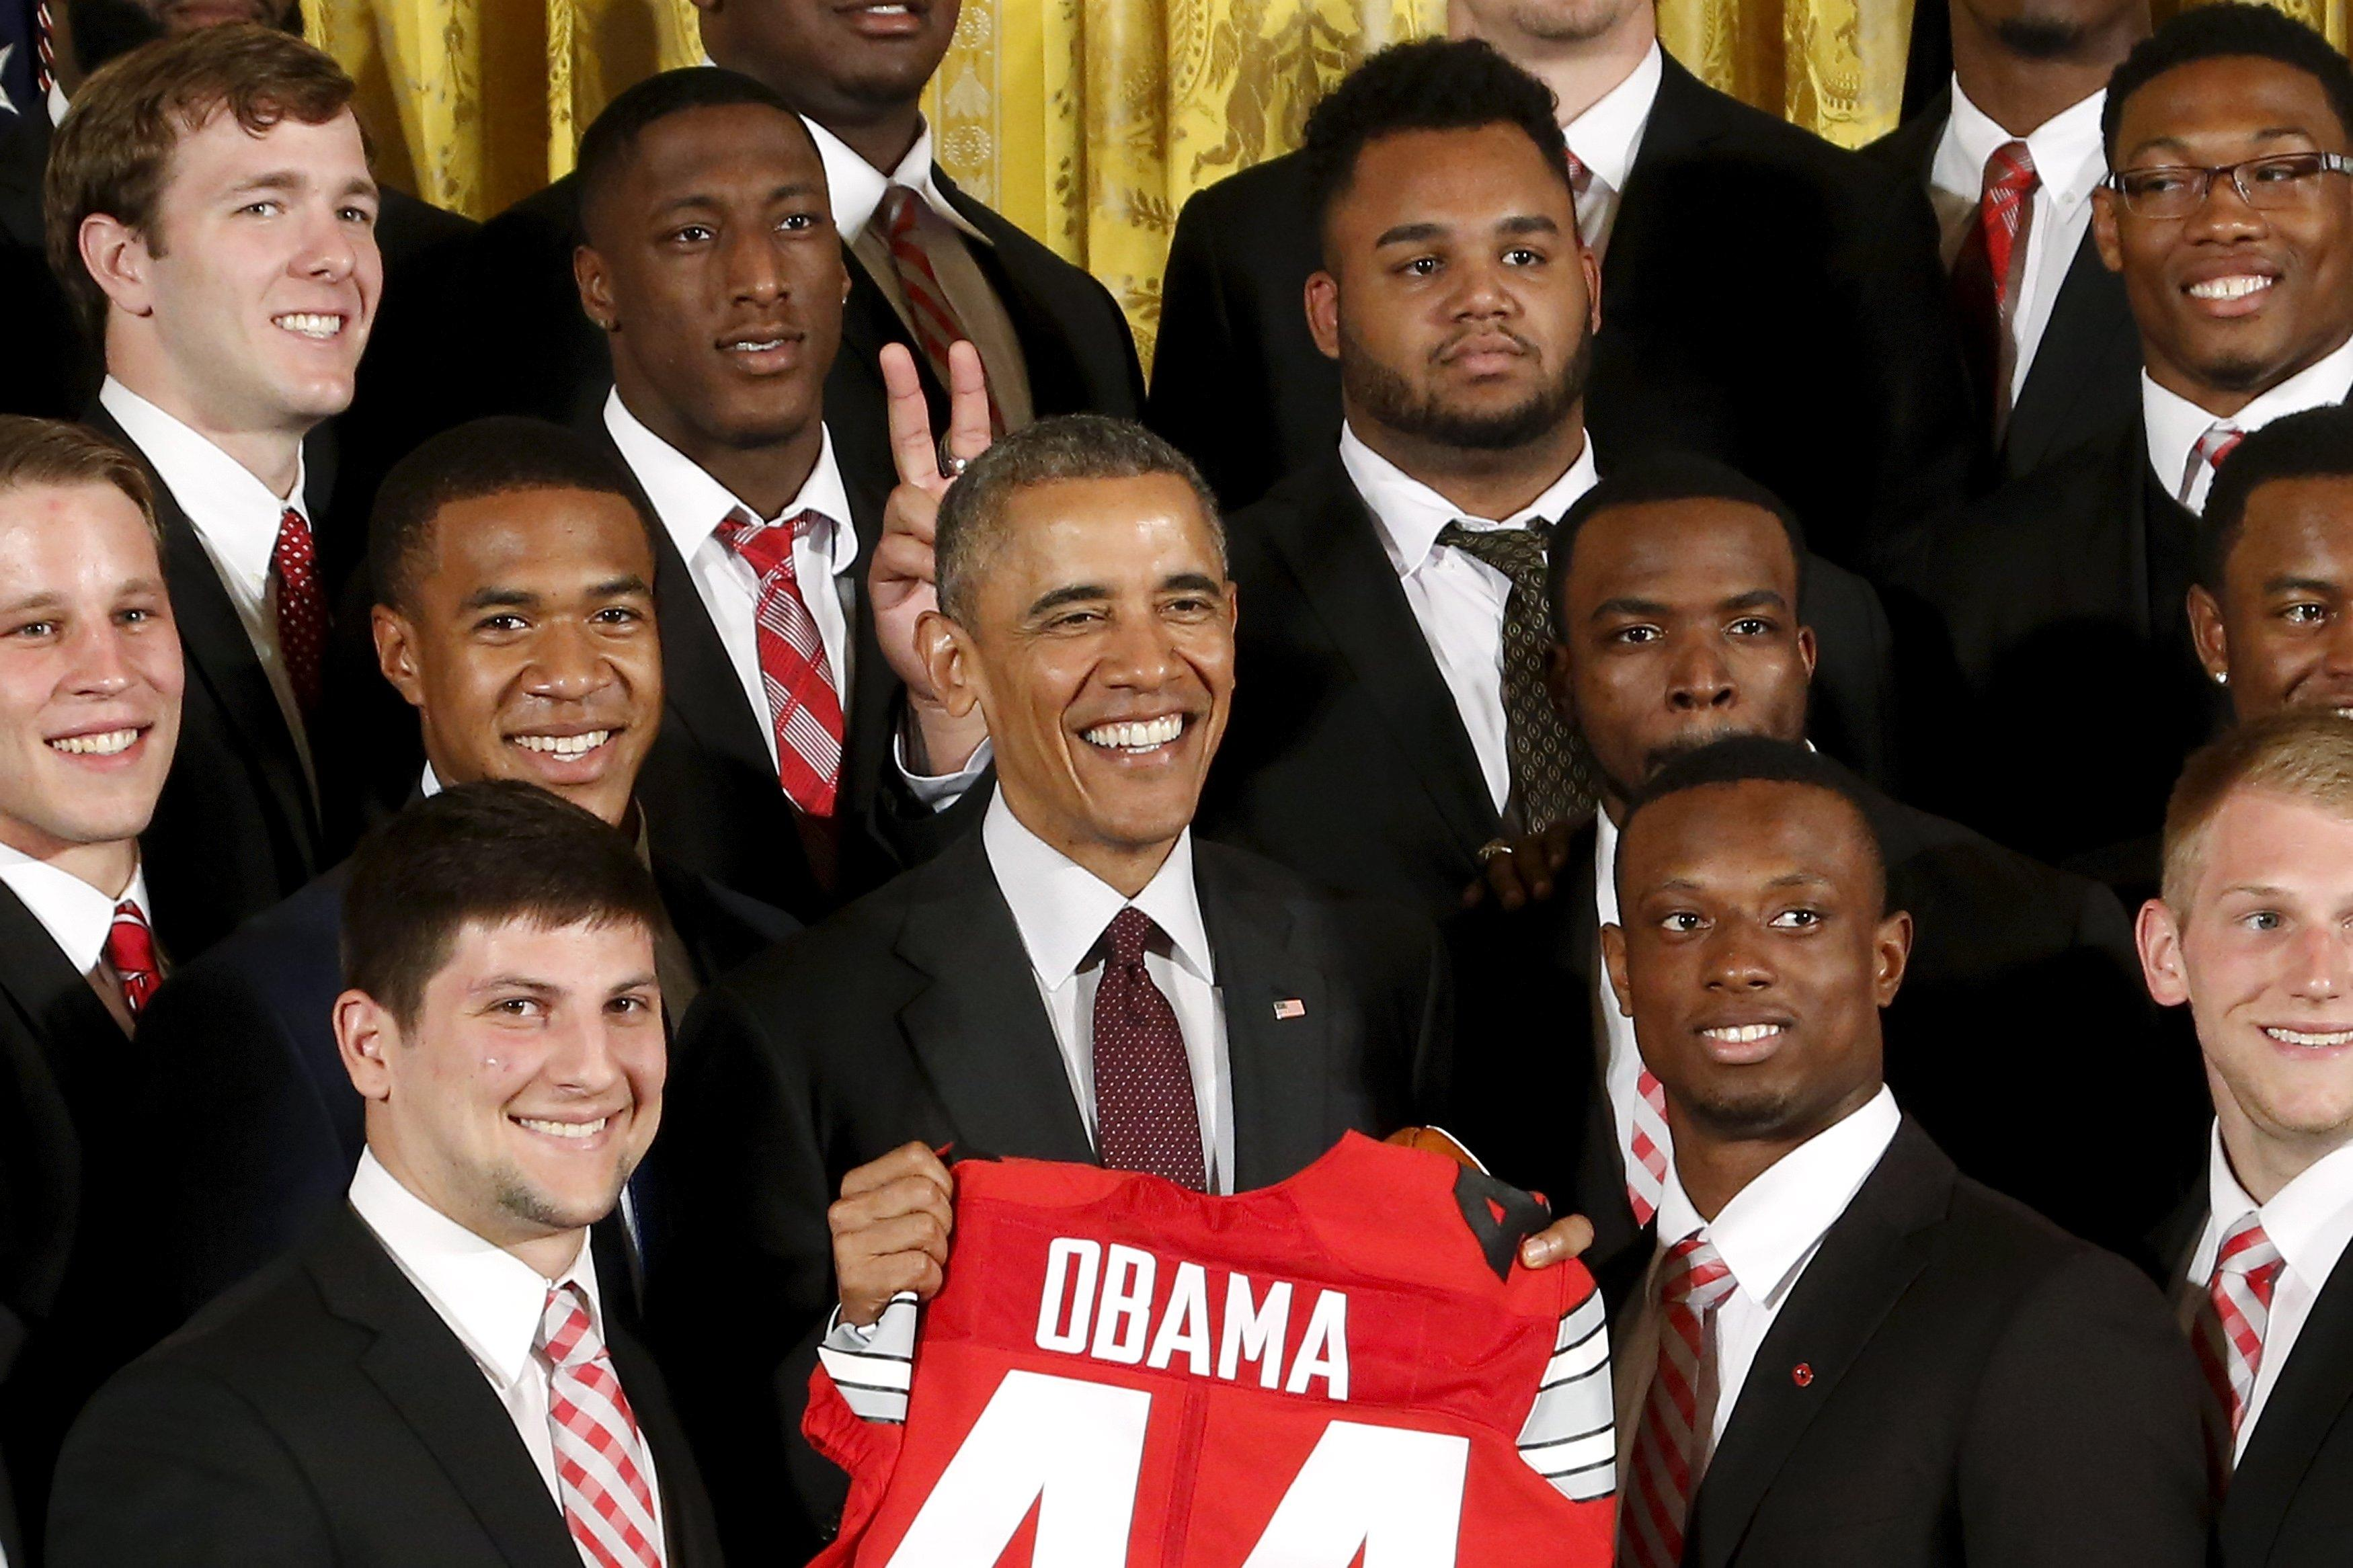 President Obama honors the Ohio State Buckeyes at White House